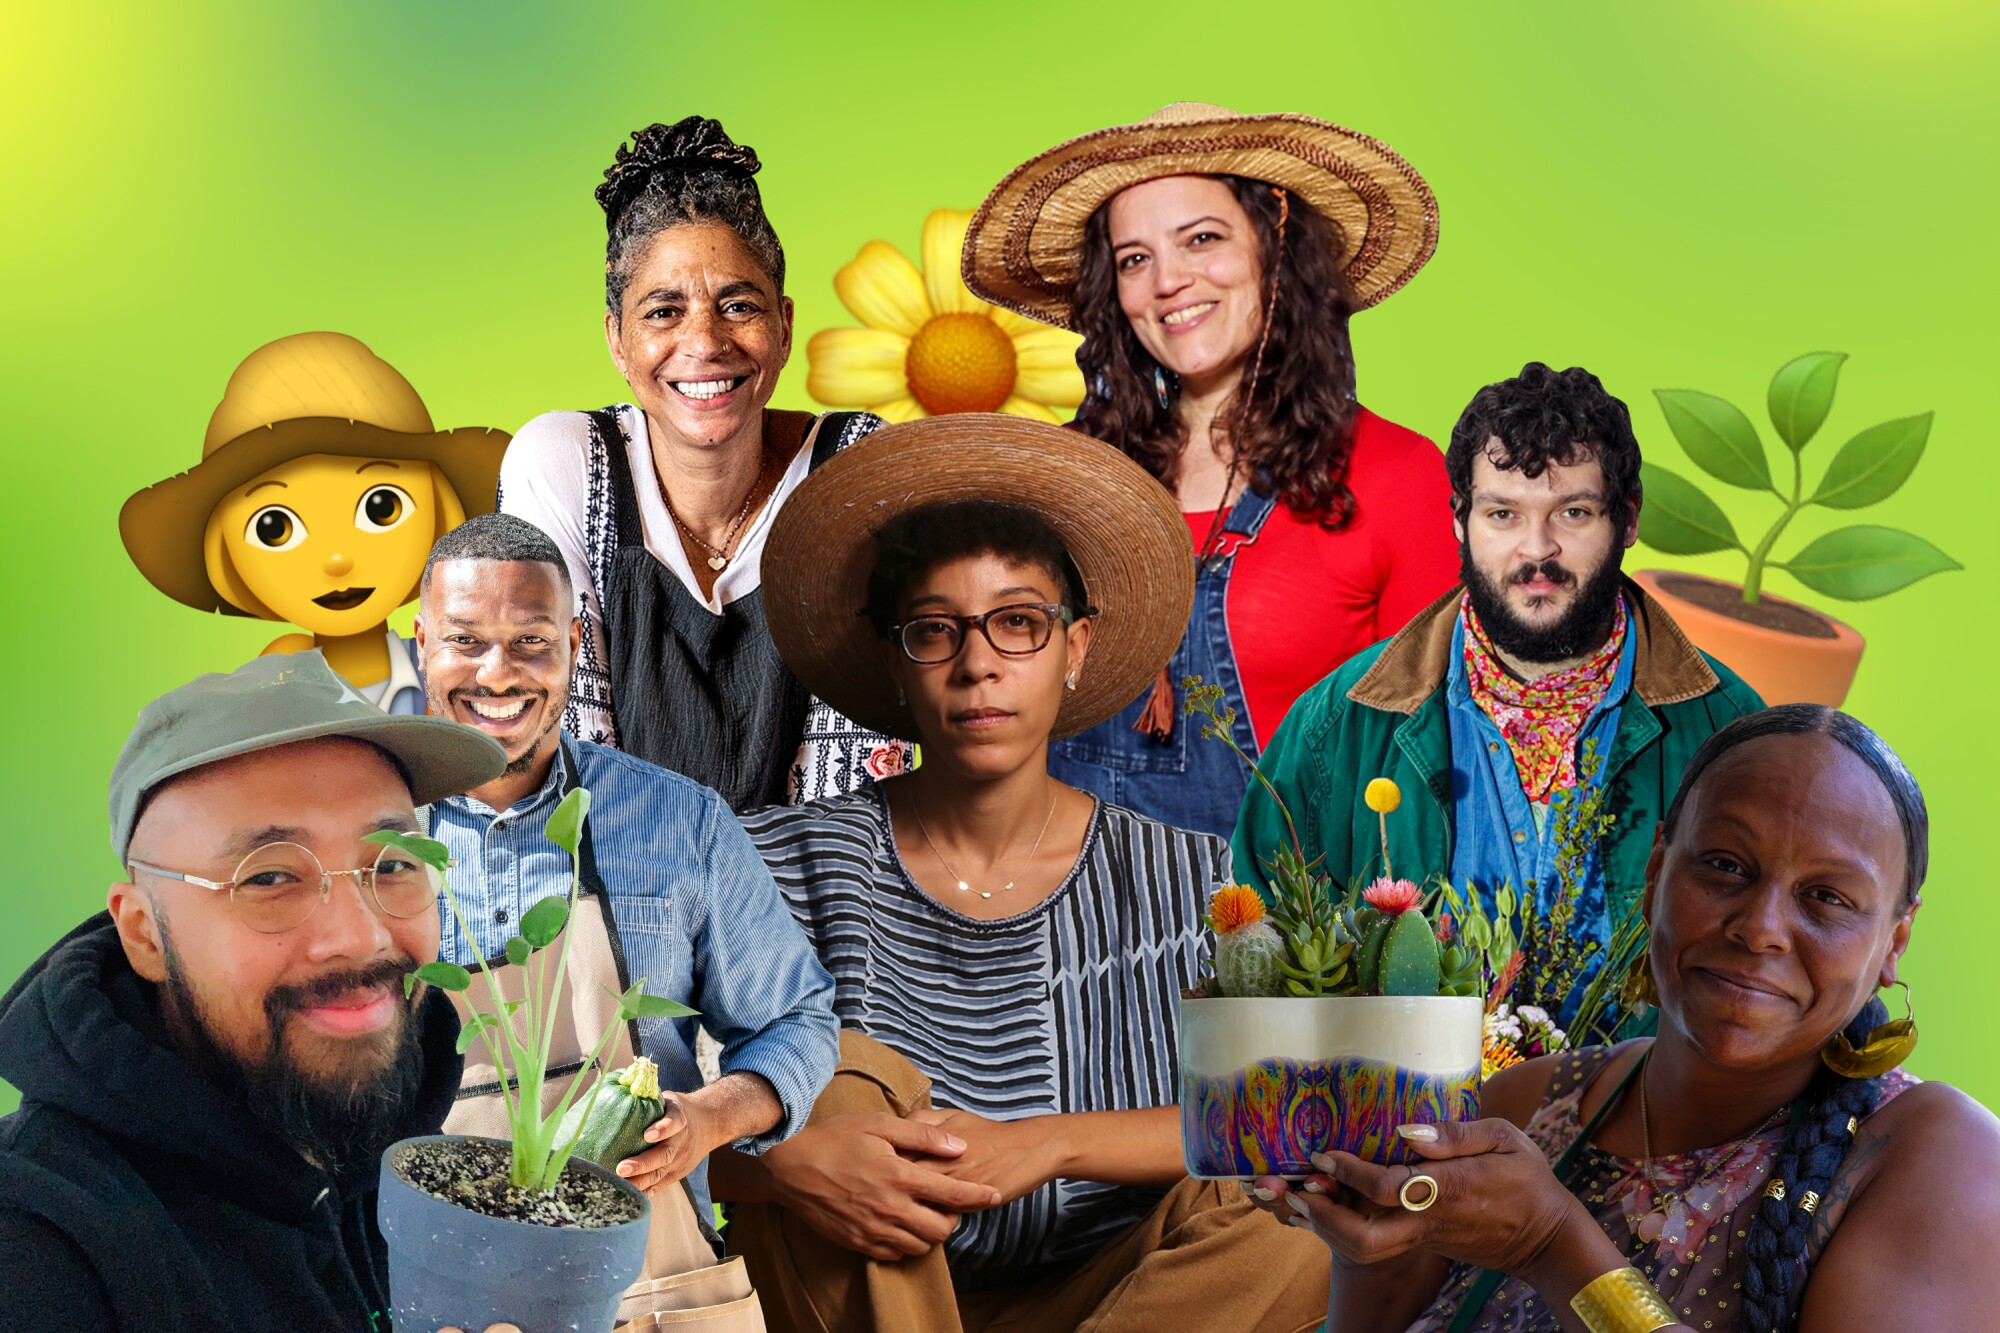 A collage of seven people, some holding plants or wearing gardening hats